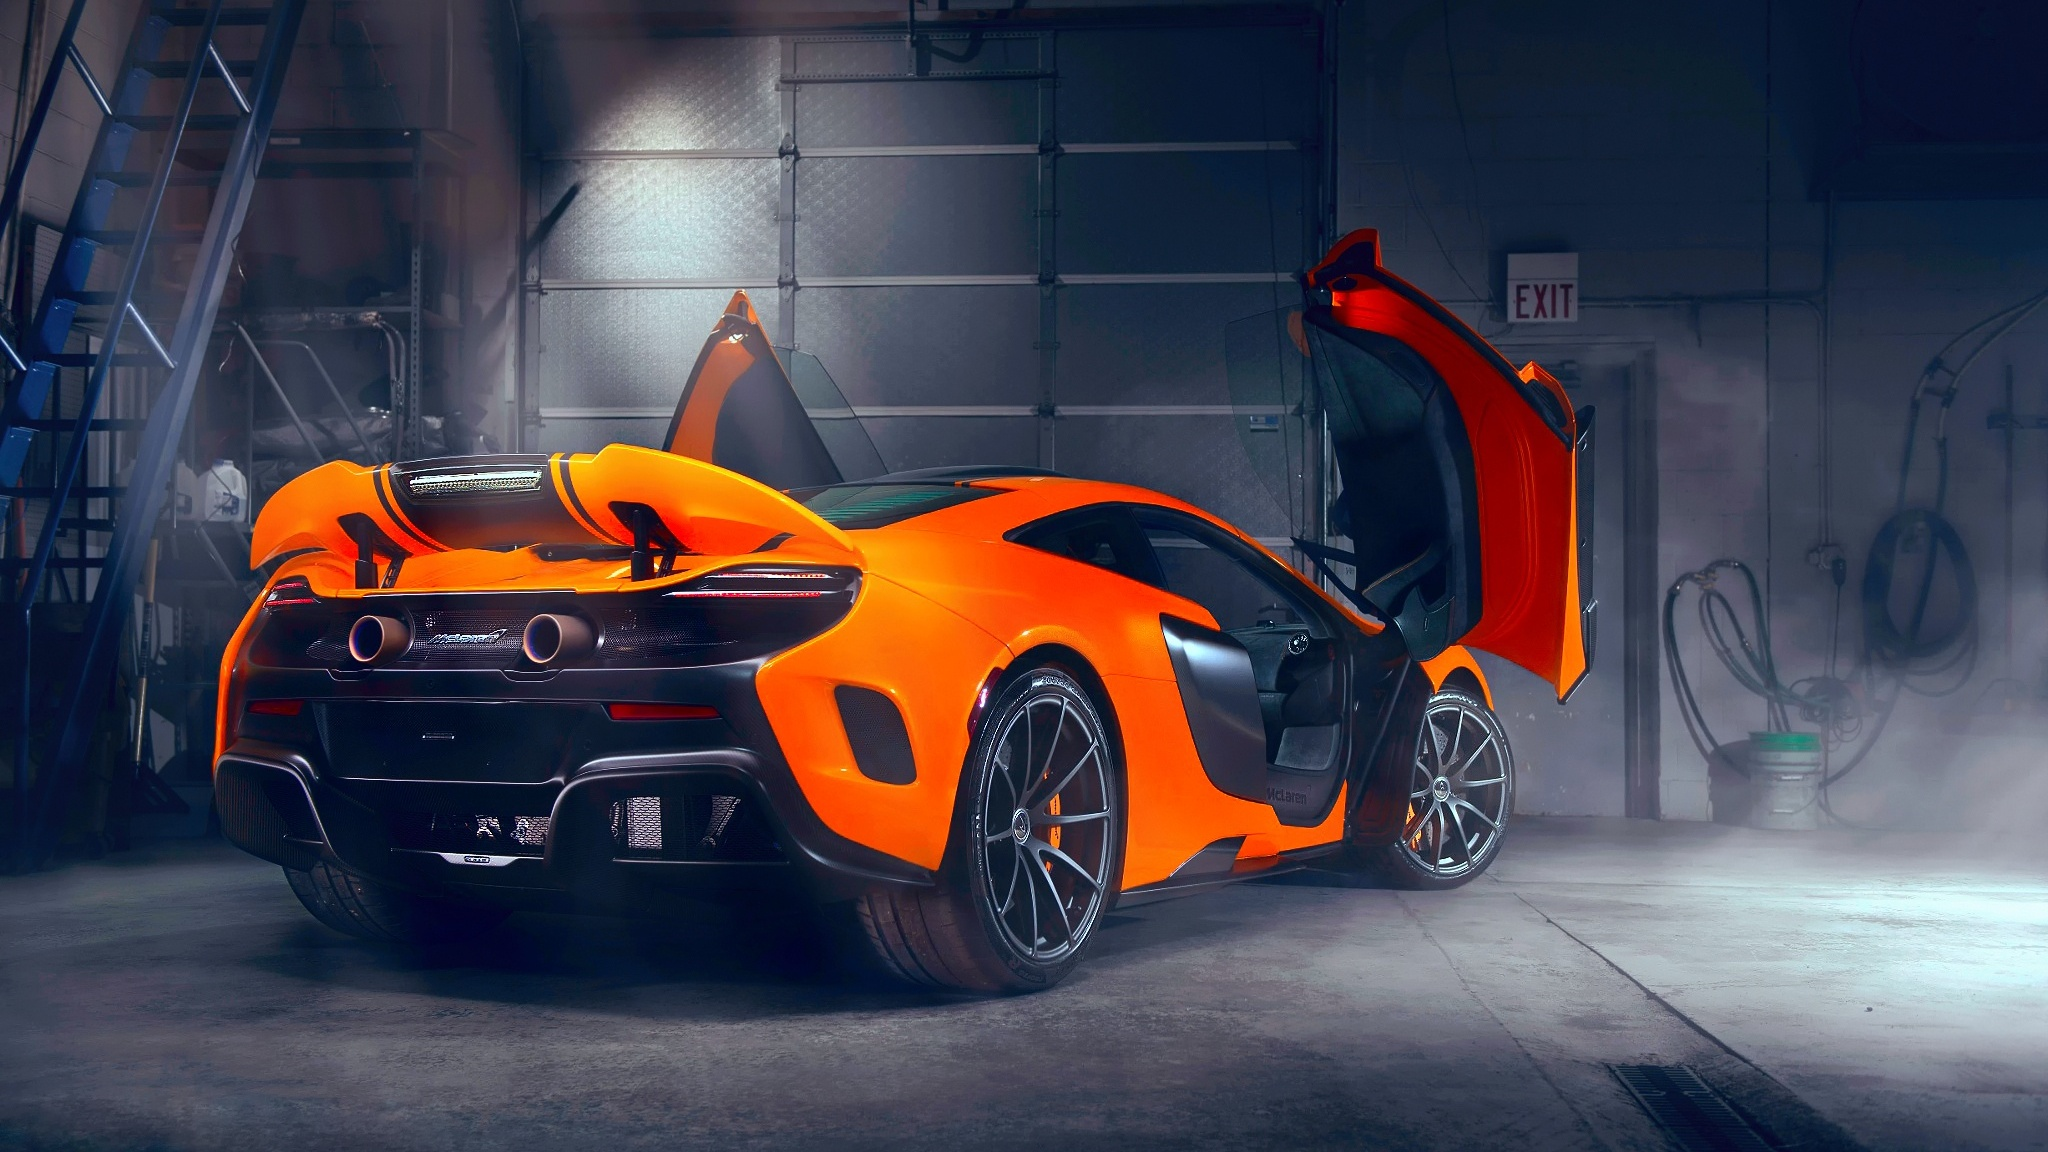 mclaren-doors-up-modified-exhausts-ap.jpg & 2048x1152 Mclaren Doors Up Modified Exhausts 2048x1152 Resolution HD ...